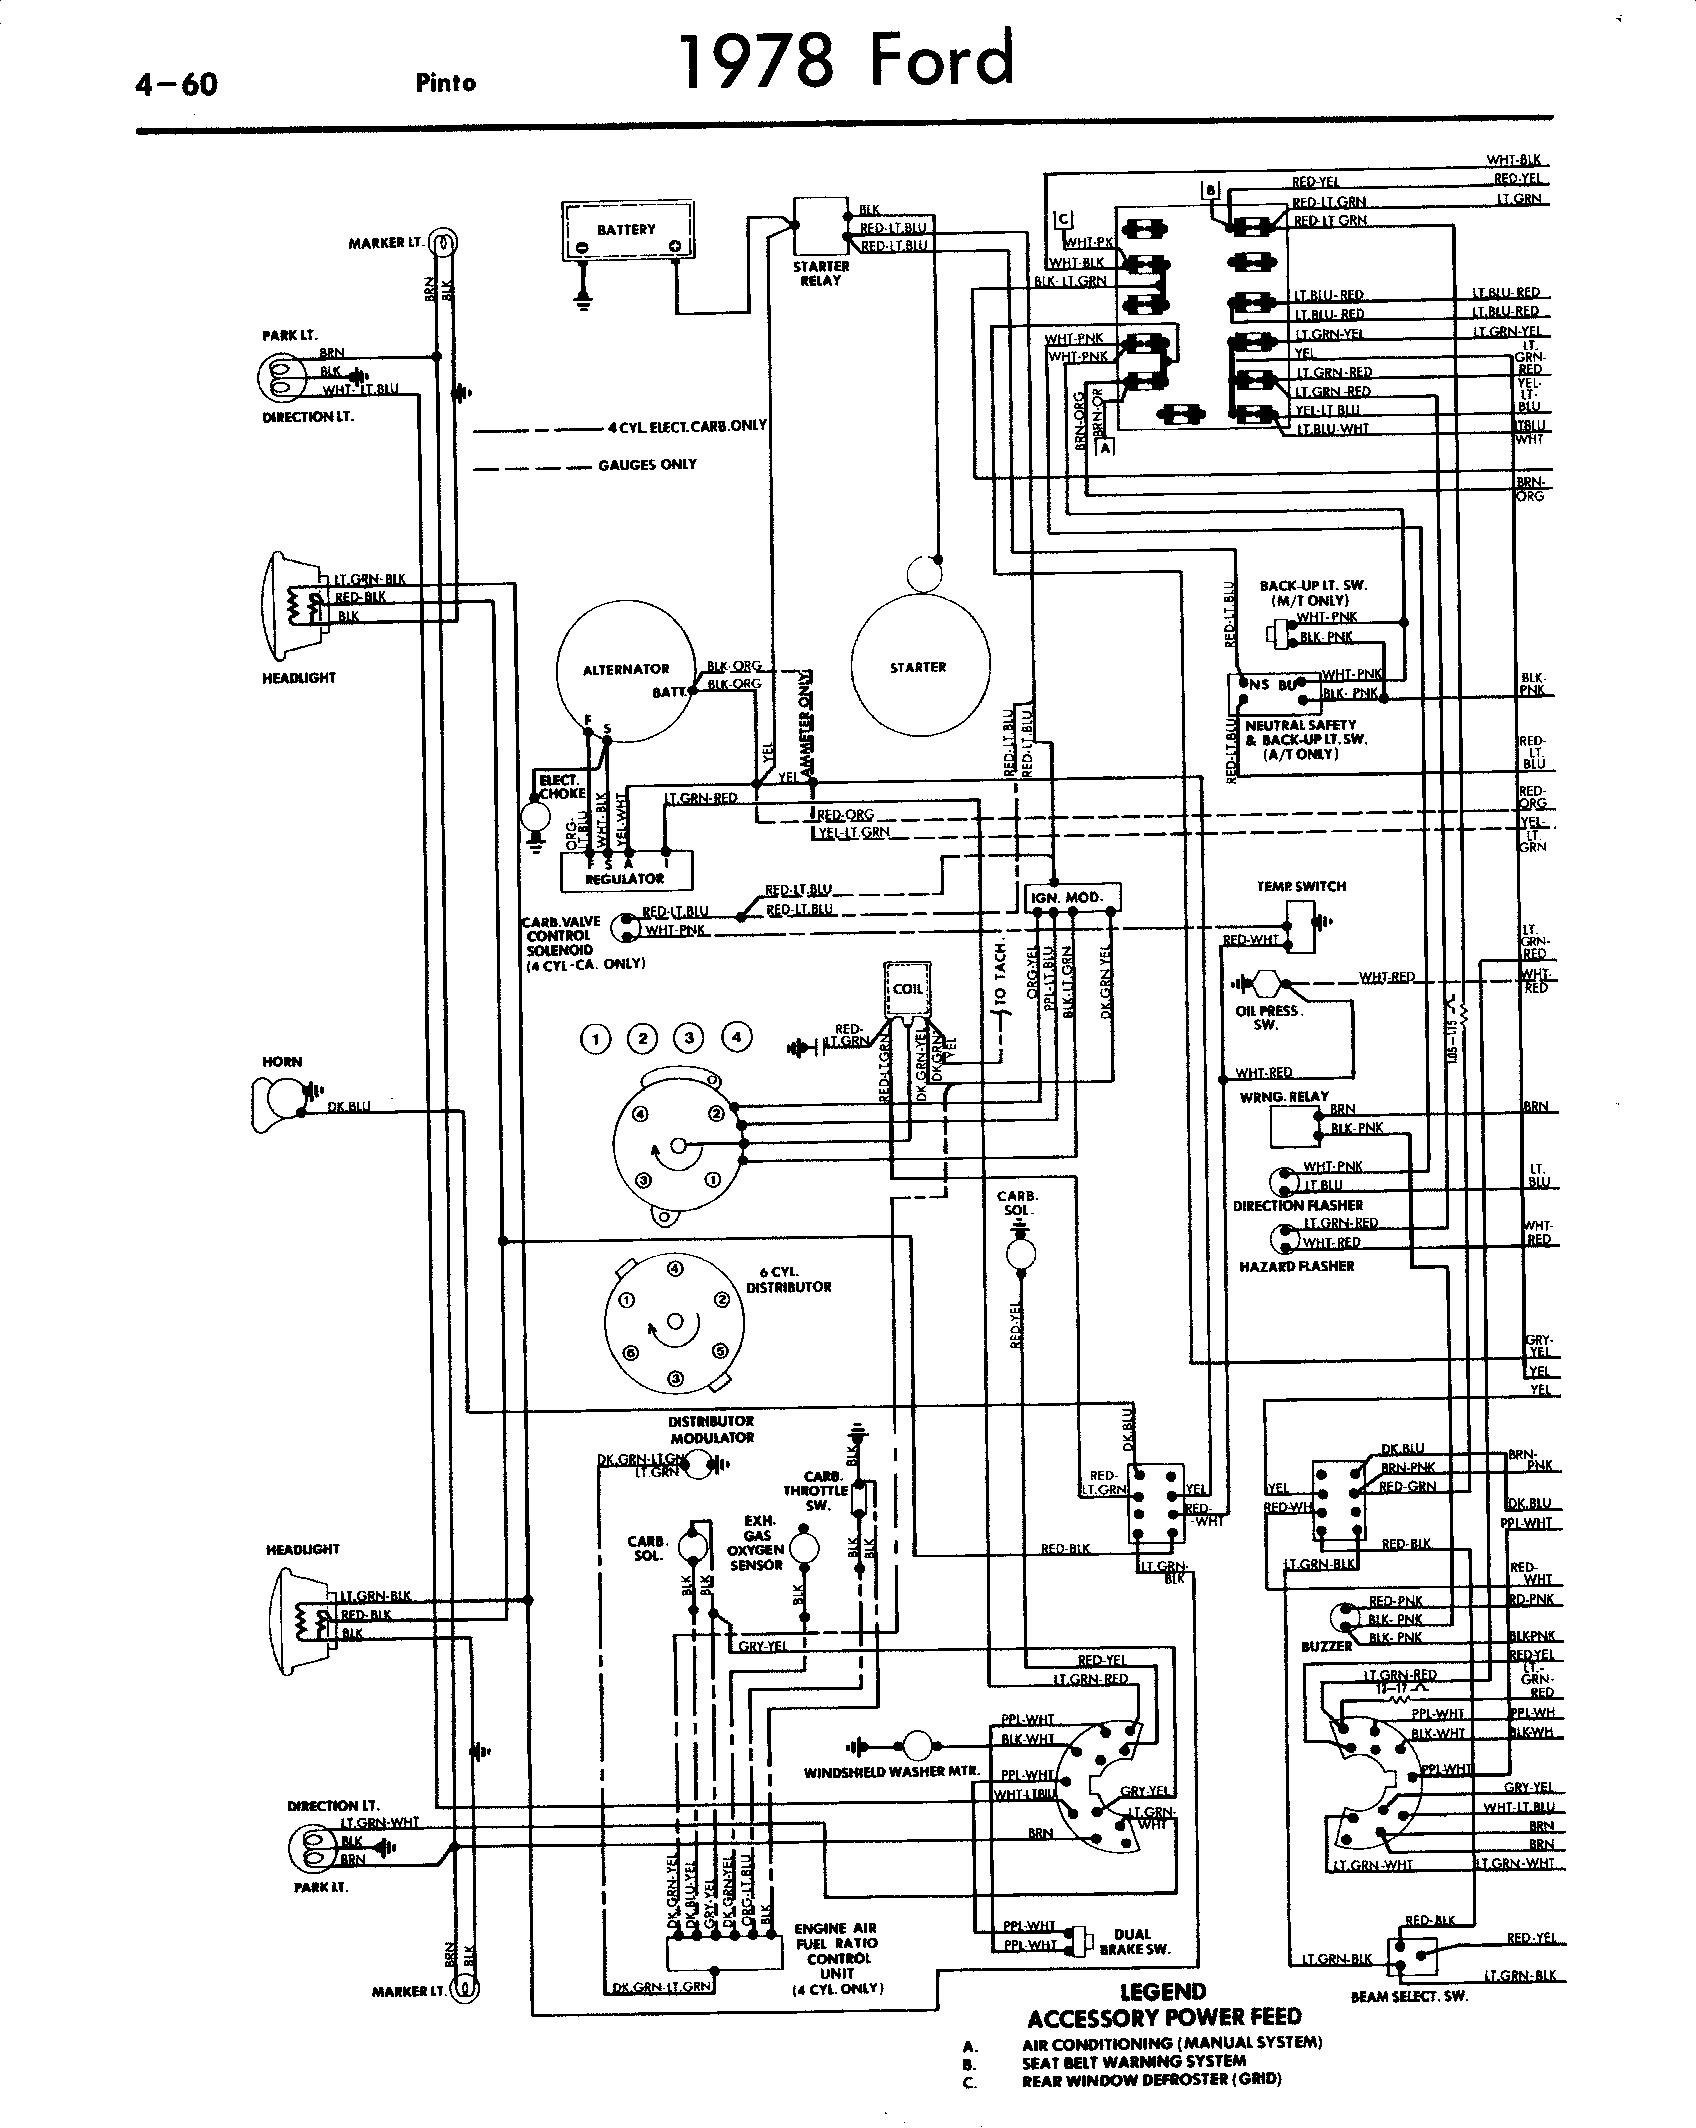 2008 Ford F 250 Mirror Wiring Diagram Manual Of 2 4 Cyl Engine Parts U2022 For Free F250 Power